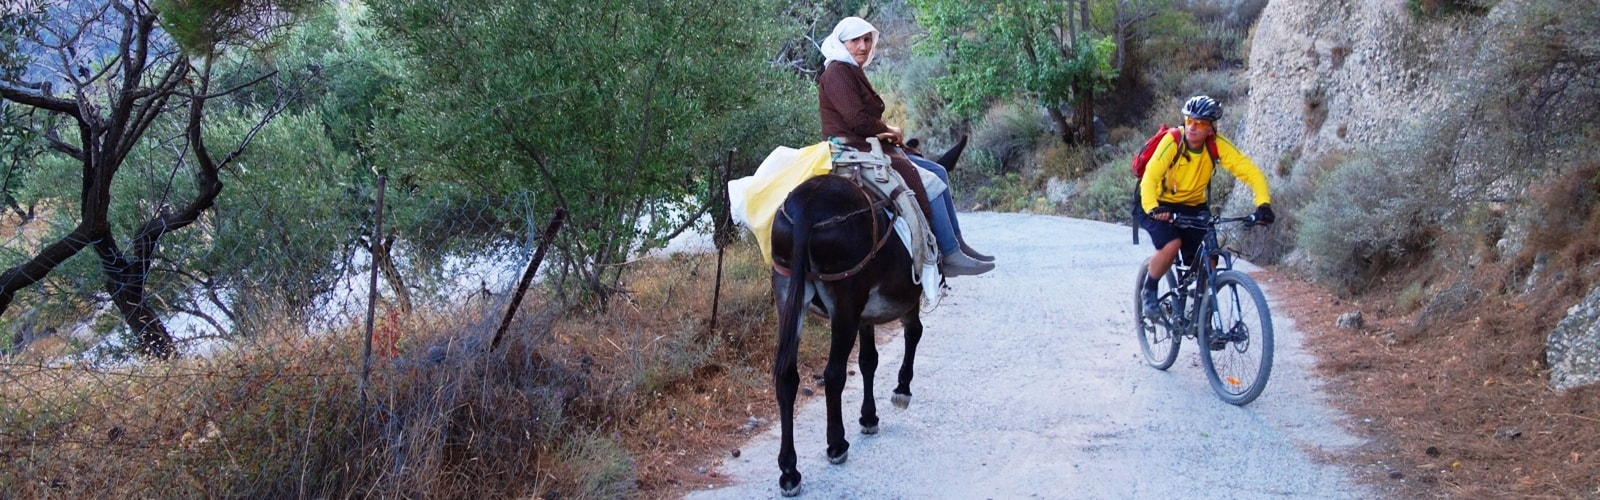 old-cretan-lady-with-a-donkey-and-a-cyclist-min